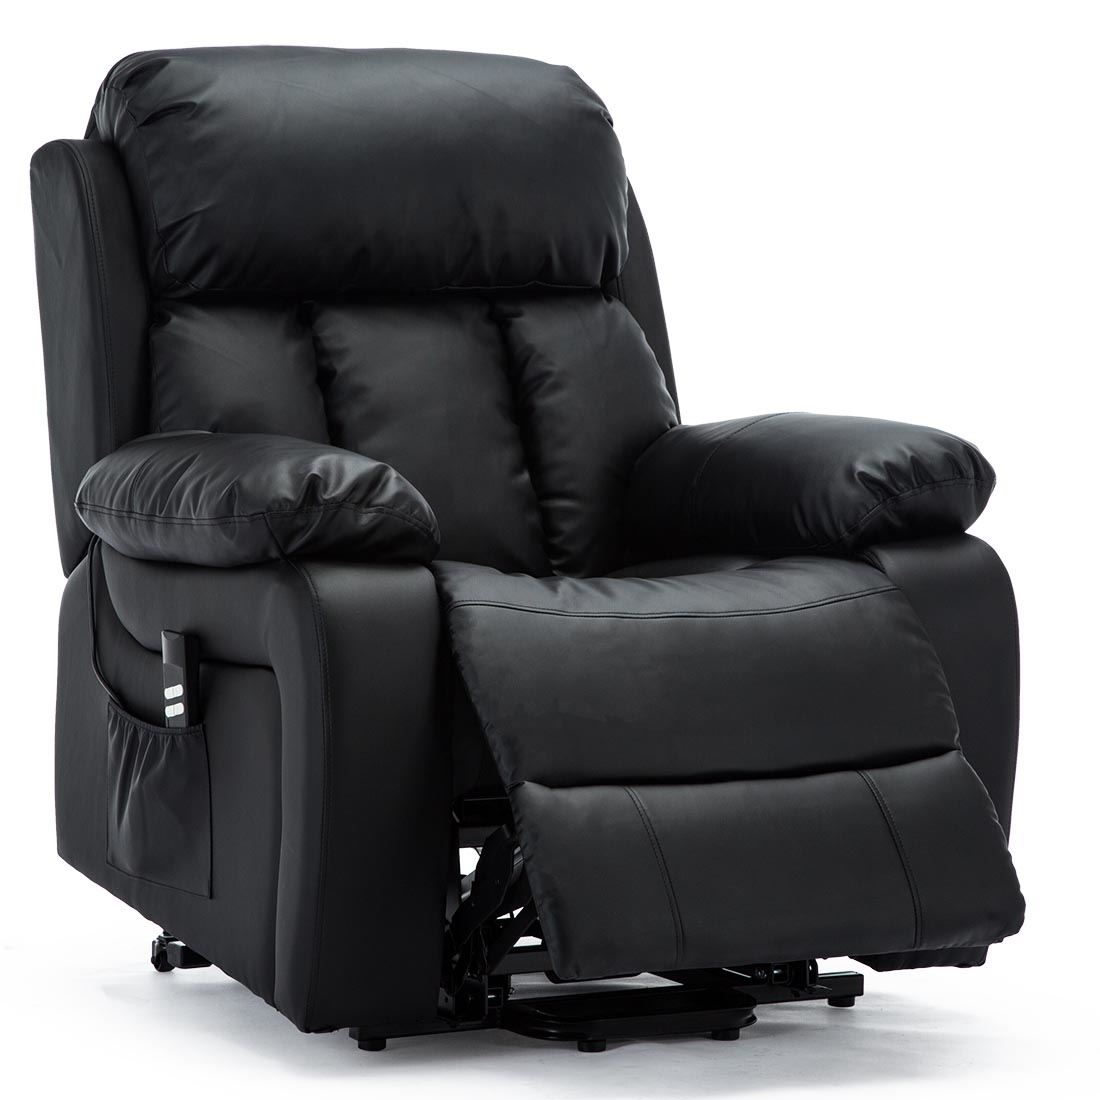 CHESTER-DUAL-MOTOR-RISER-ELECTRIC-LEATHER-RECLINER-ARMCHAIR-HEATED-MASSAGE-CHAIR